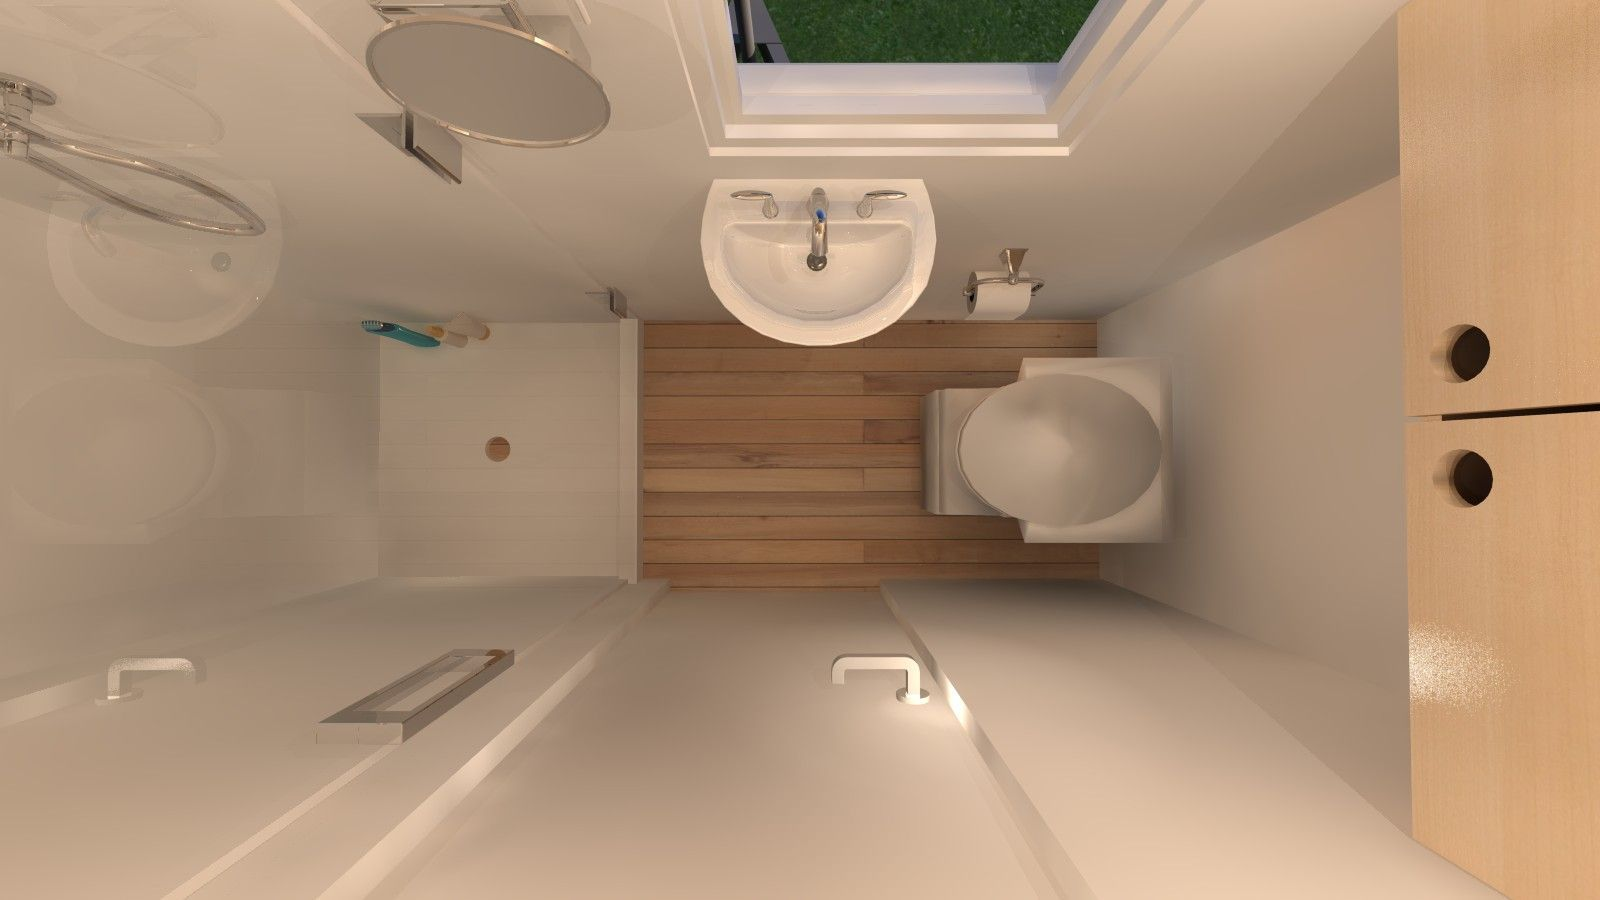 Just Got A Little Space These Small Bathroom Designs Will Inspire You Tinyhousebathroom Very Small Bathroom Small Shower Room Tiny Bathrooms